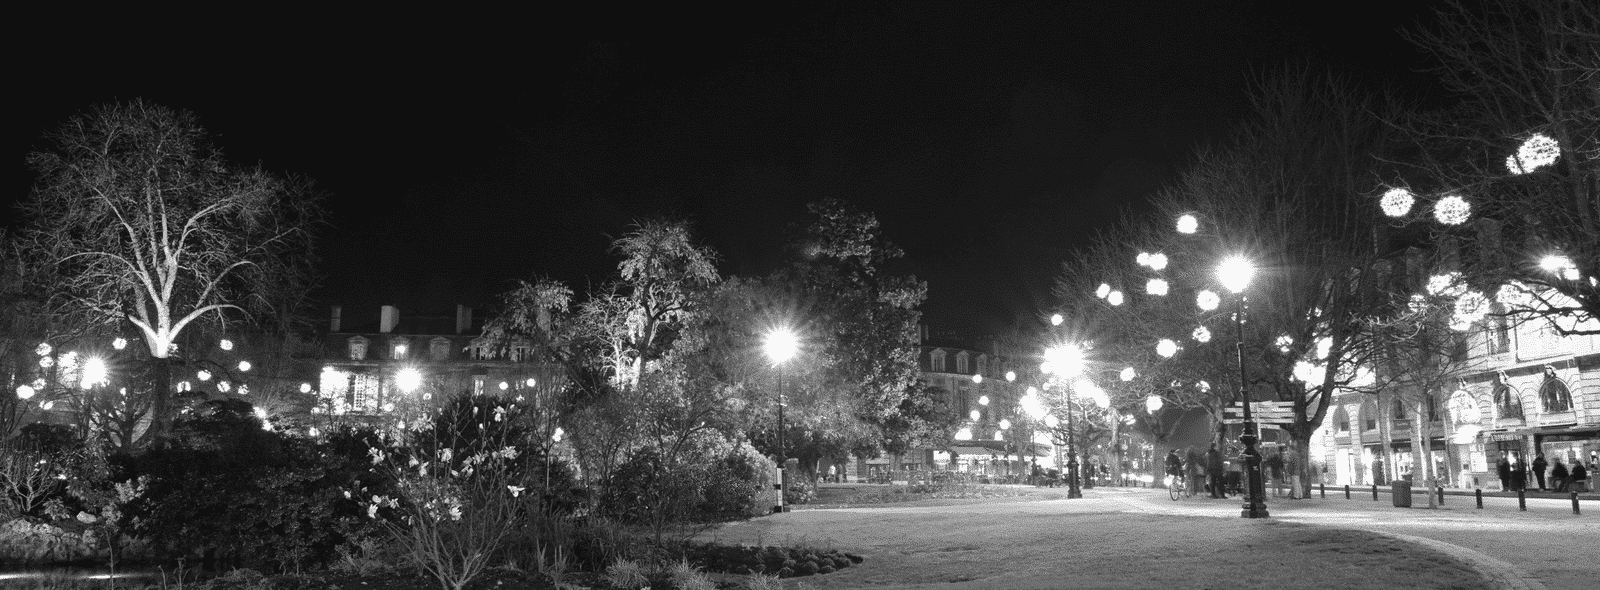 place-gambetta-de-nuit-bordeaux-business